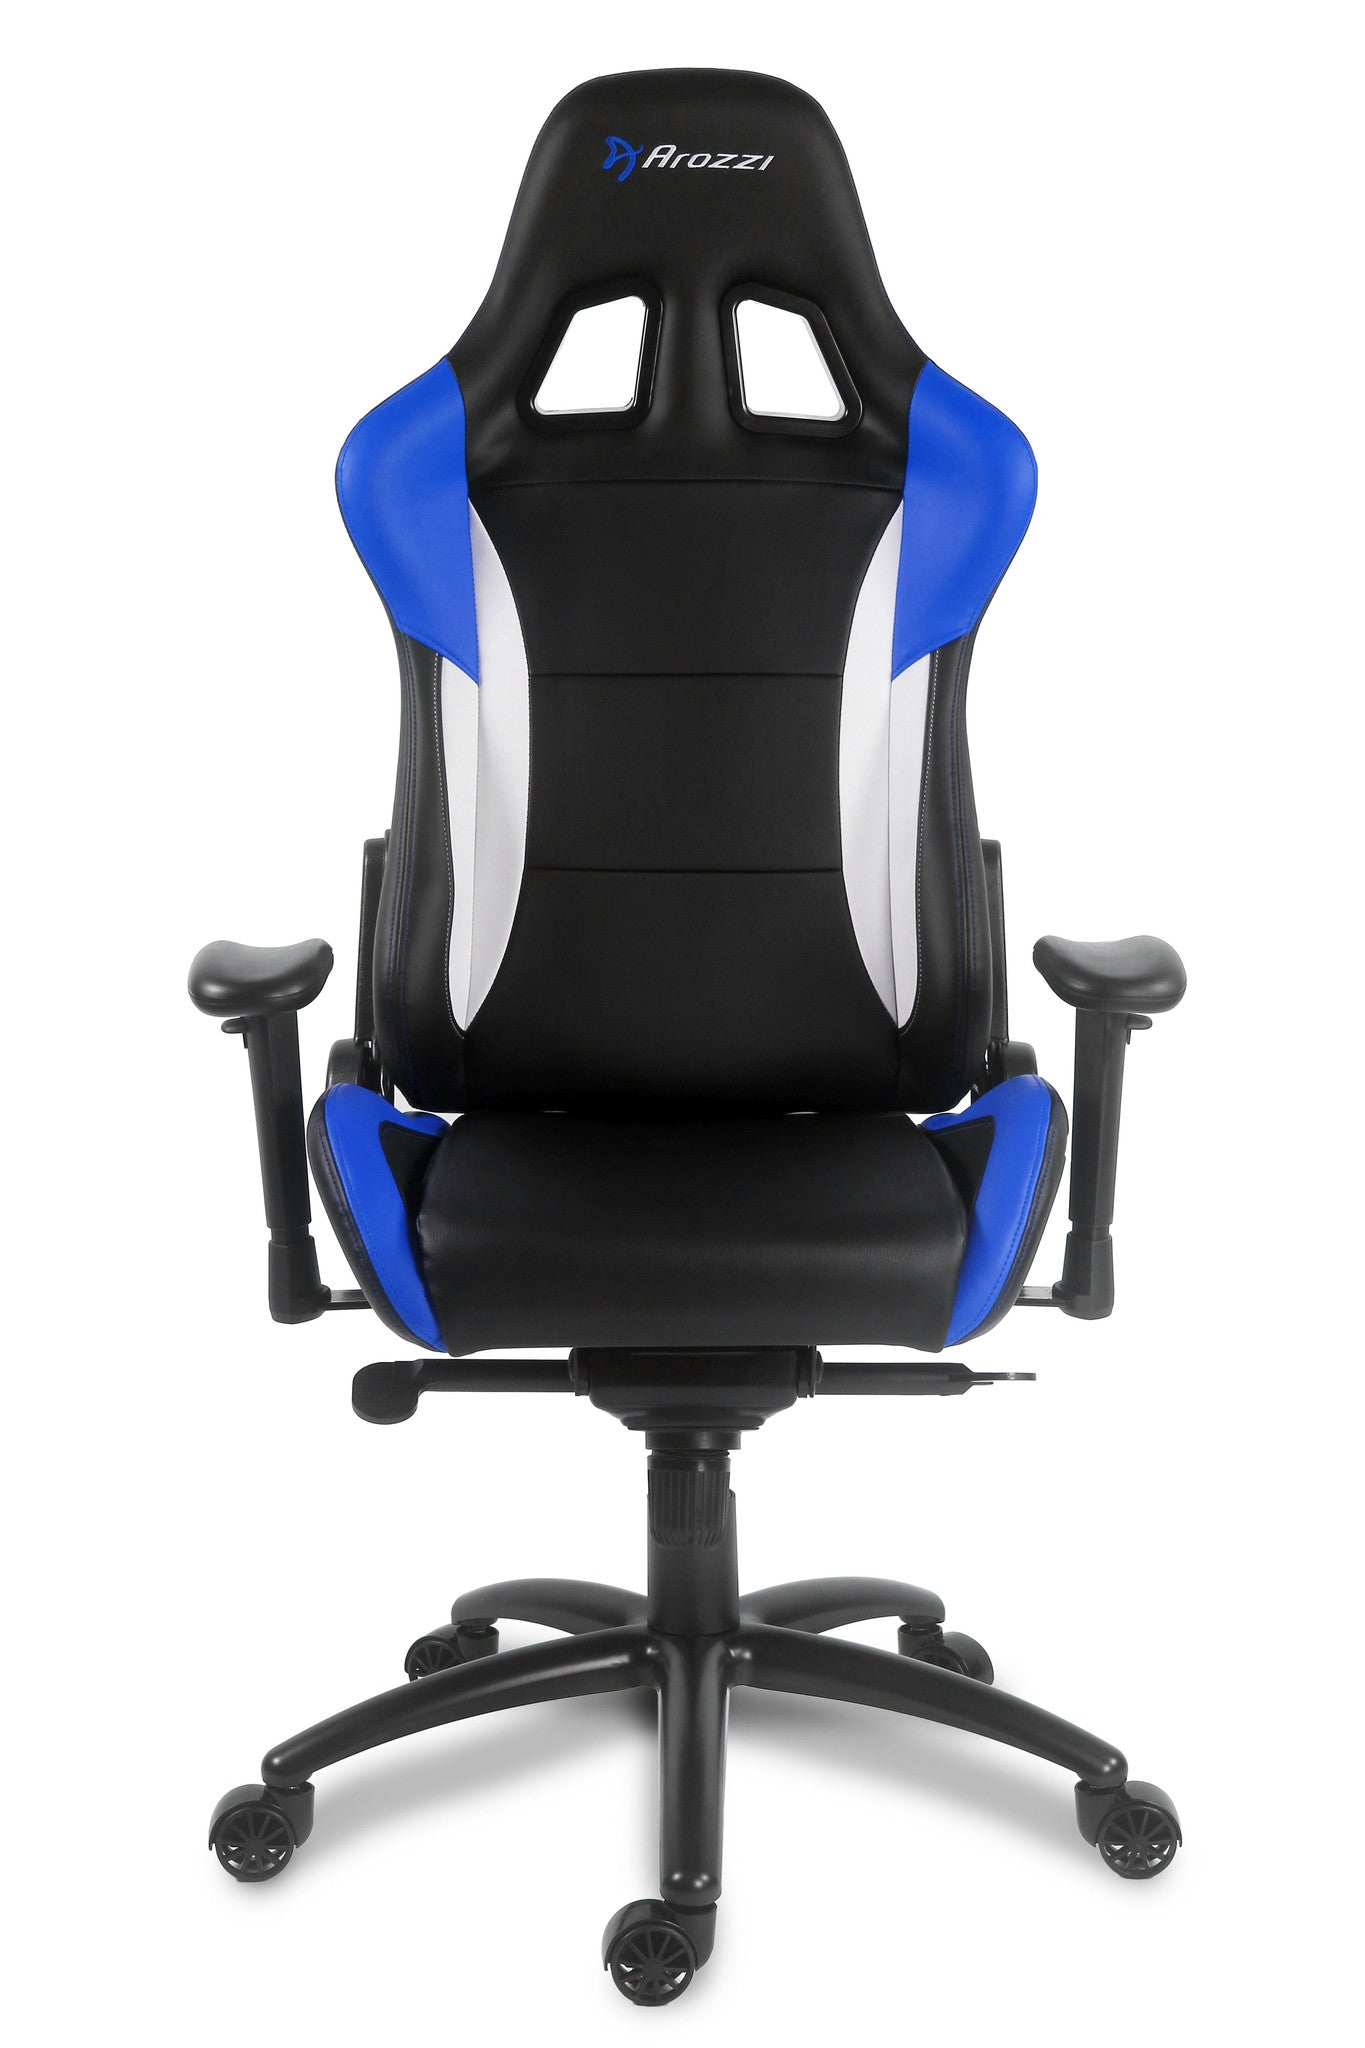 Most fortable Chair For Gaming Perfect Most fortable Chair